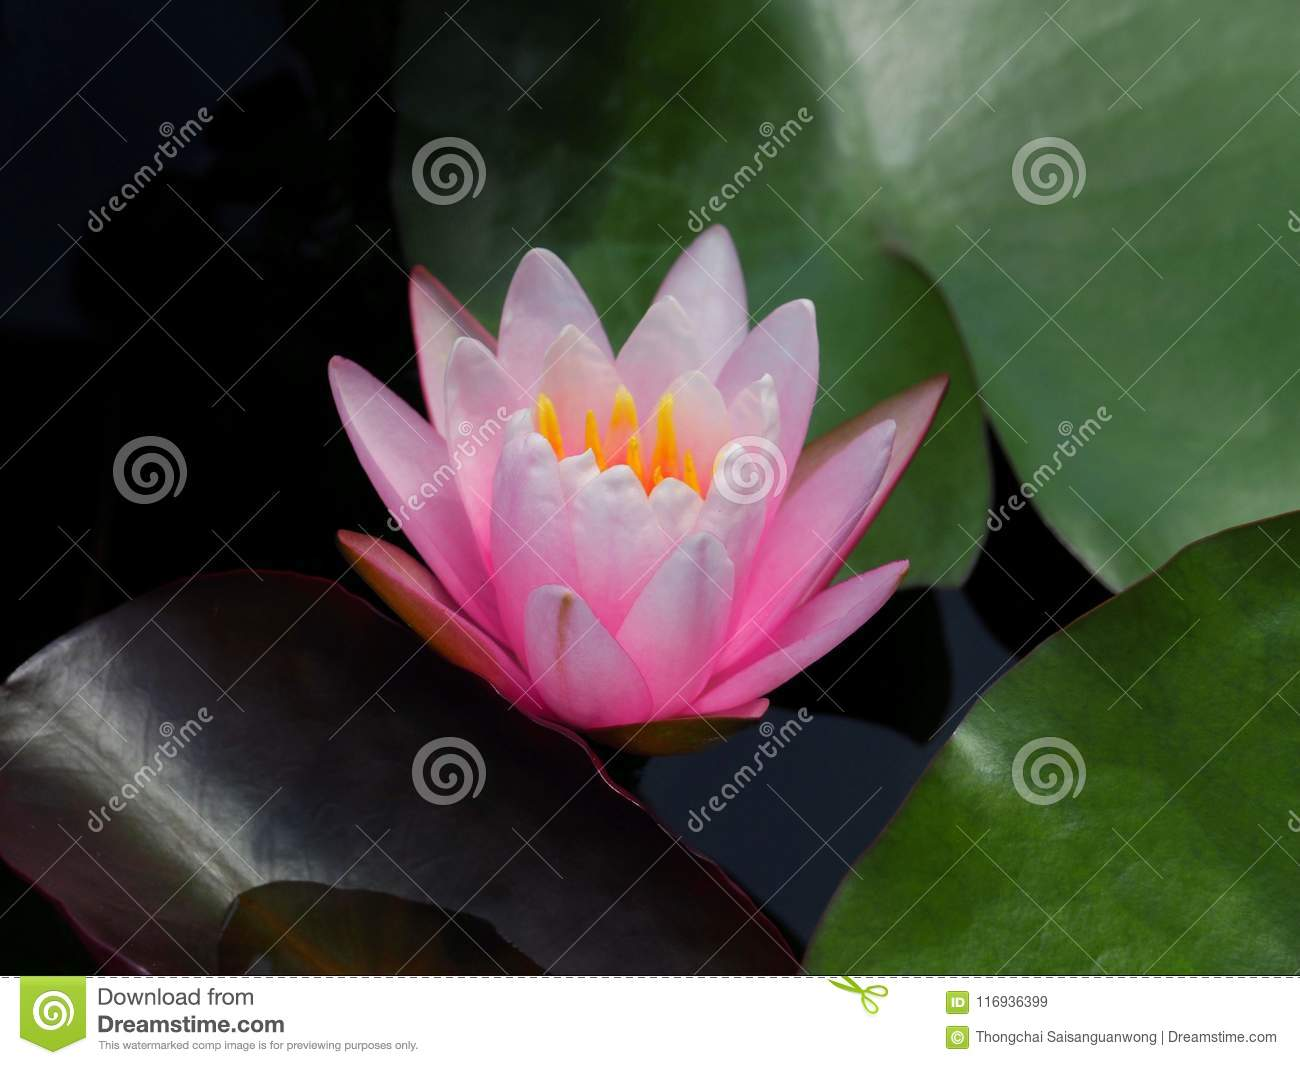 Lotus flower or water lily pink with green leaves beautifully lotus flower or water lily pink with green leaves beautifully blooming in the spa pool to decorate it is the flower of the month july is also related to izmirmasajfo